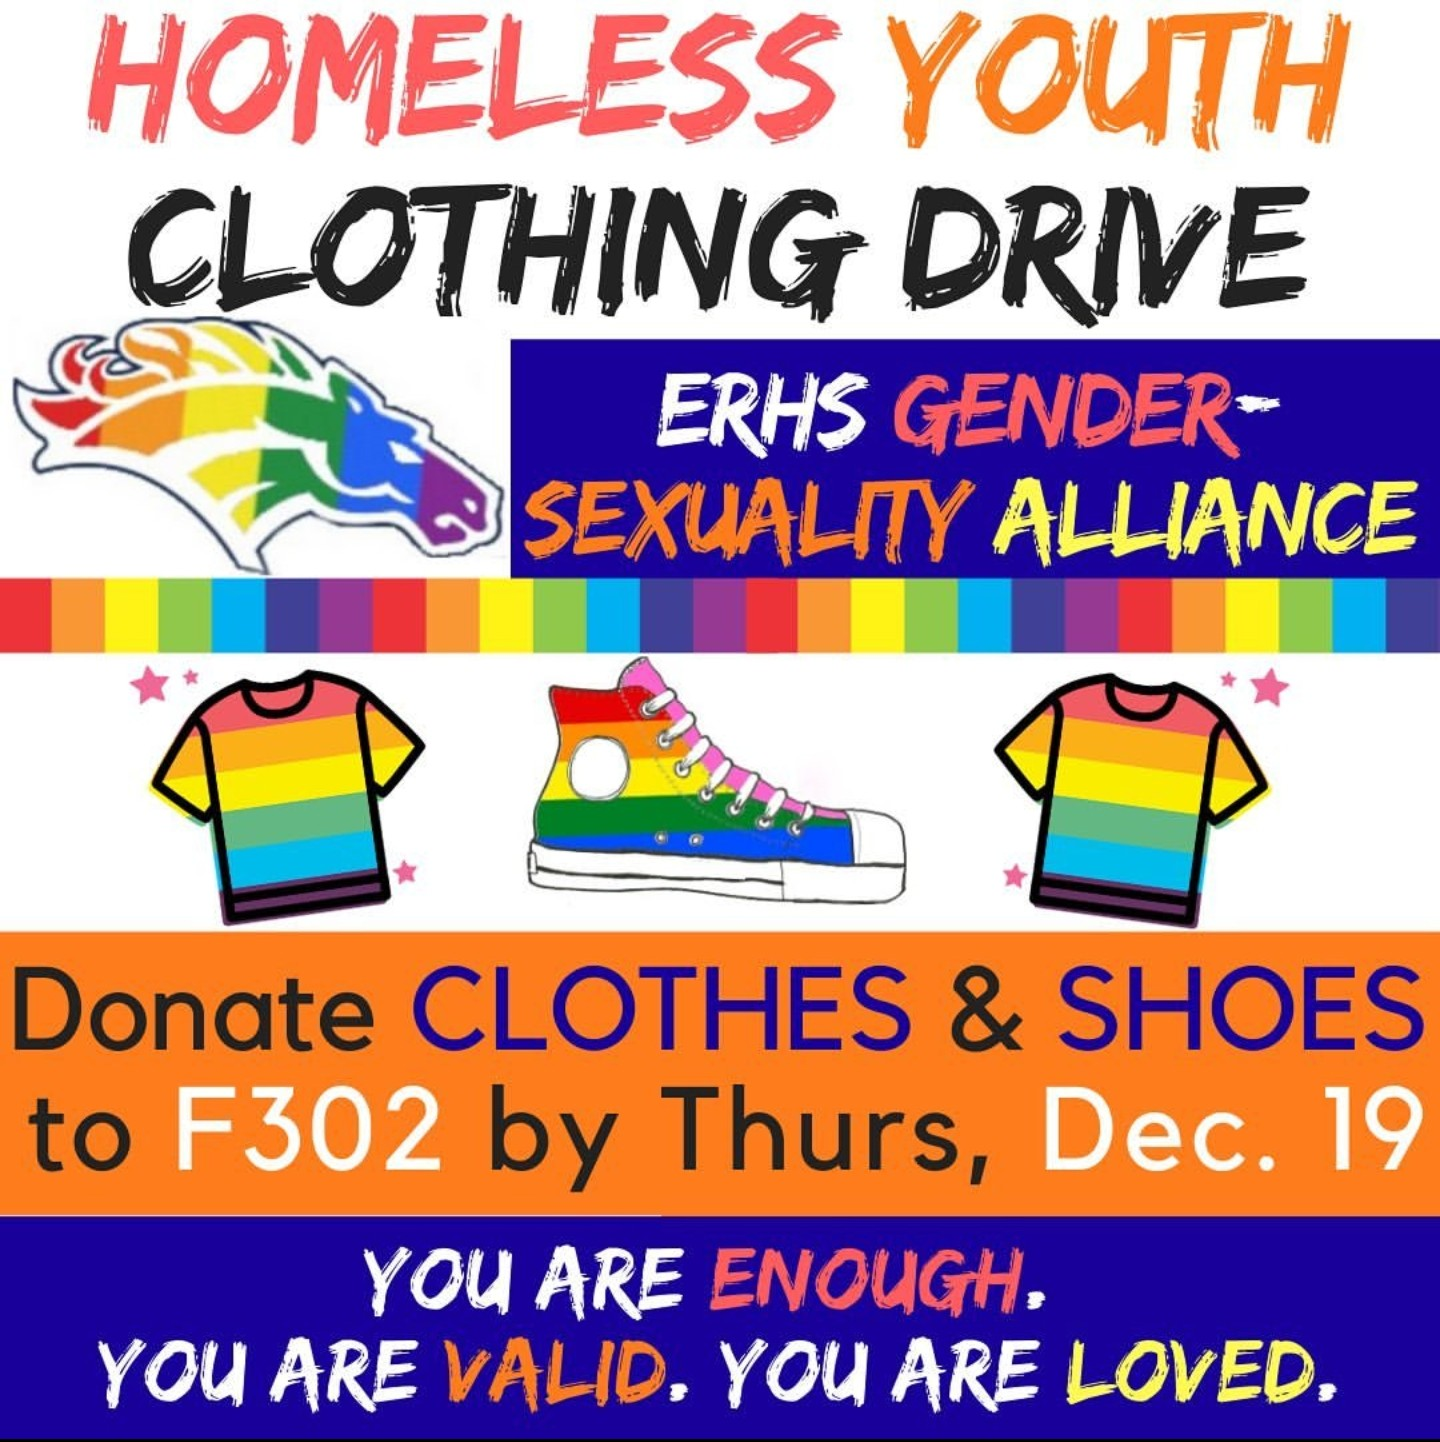 GSA is collecting clothing donations to give to homeless youth.